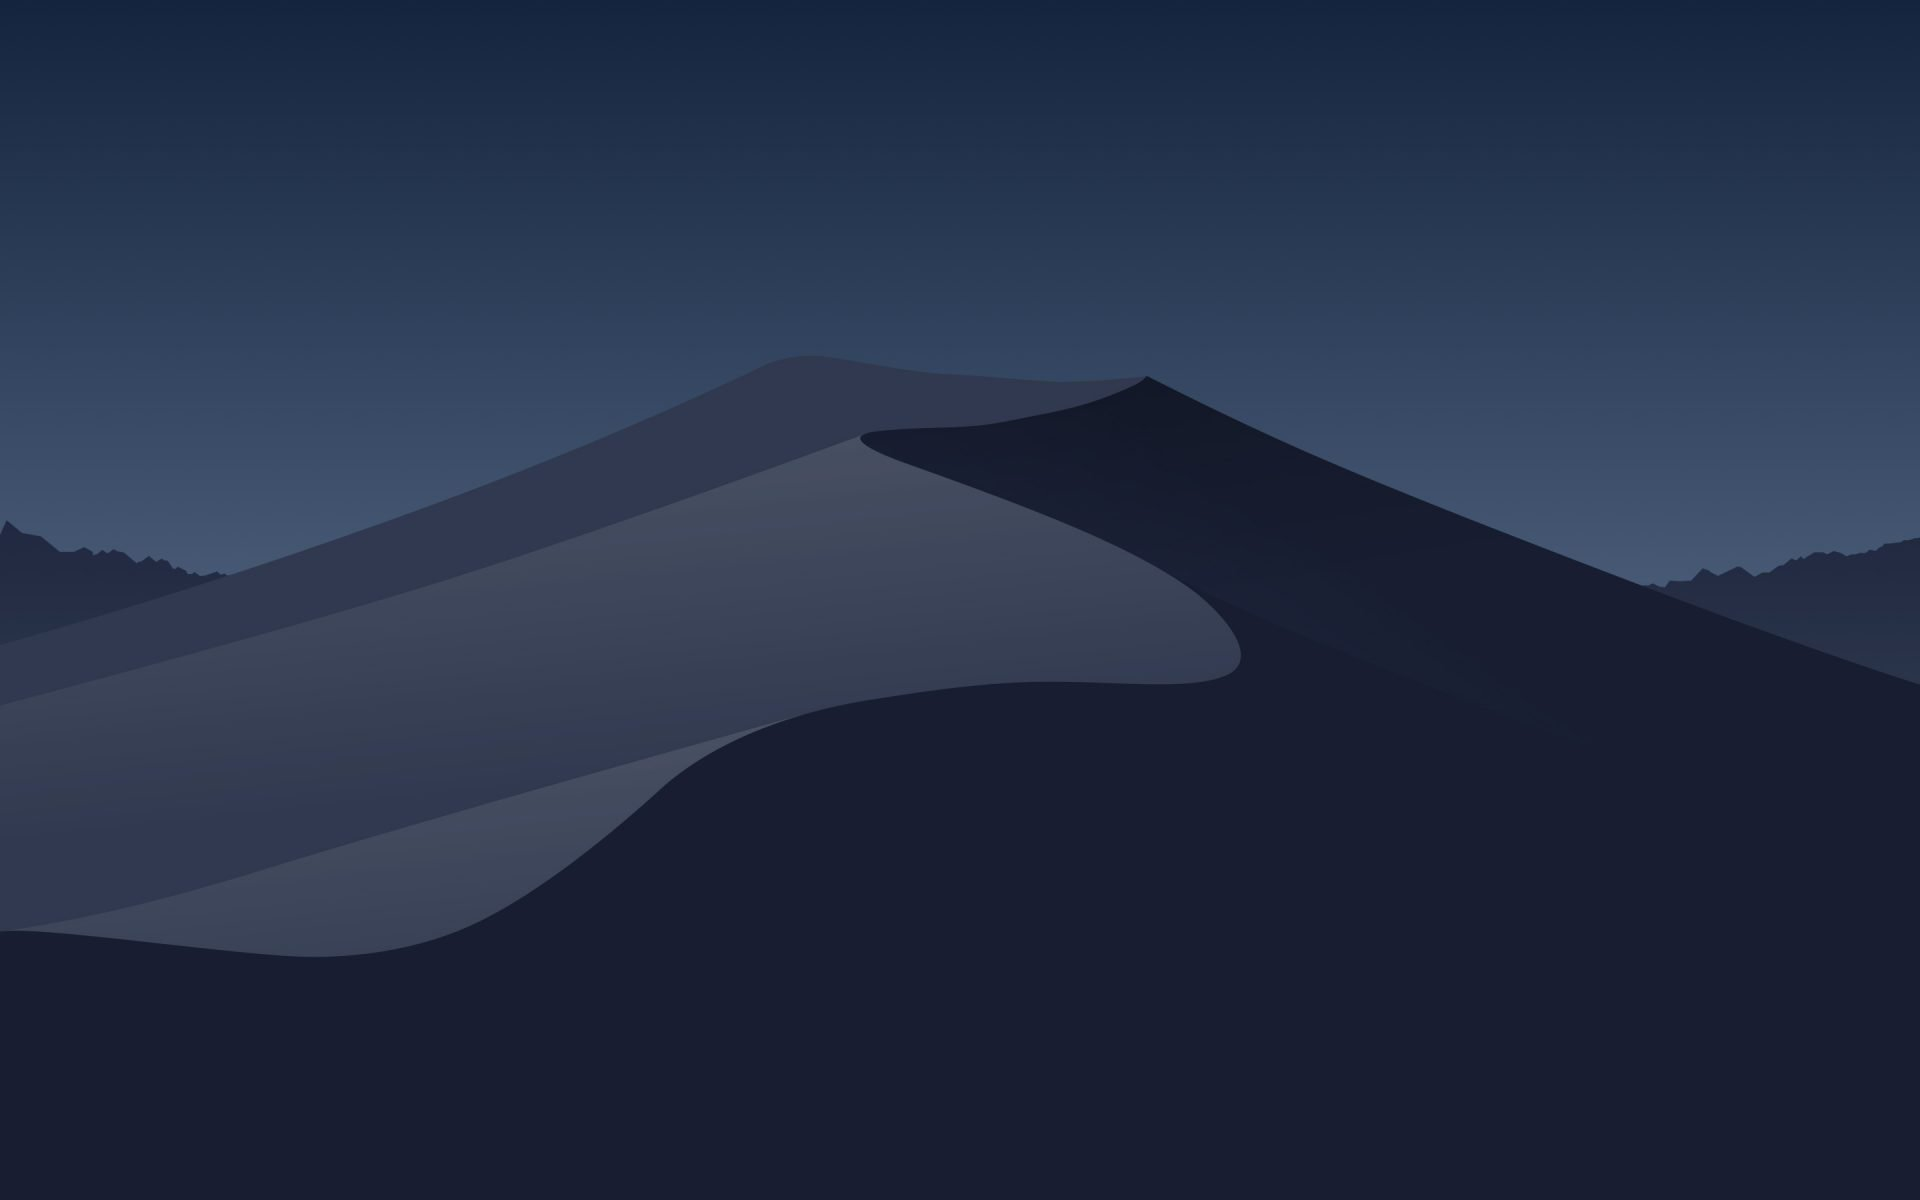 minimal-mojave-night-yf